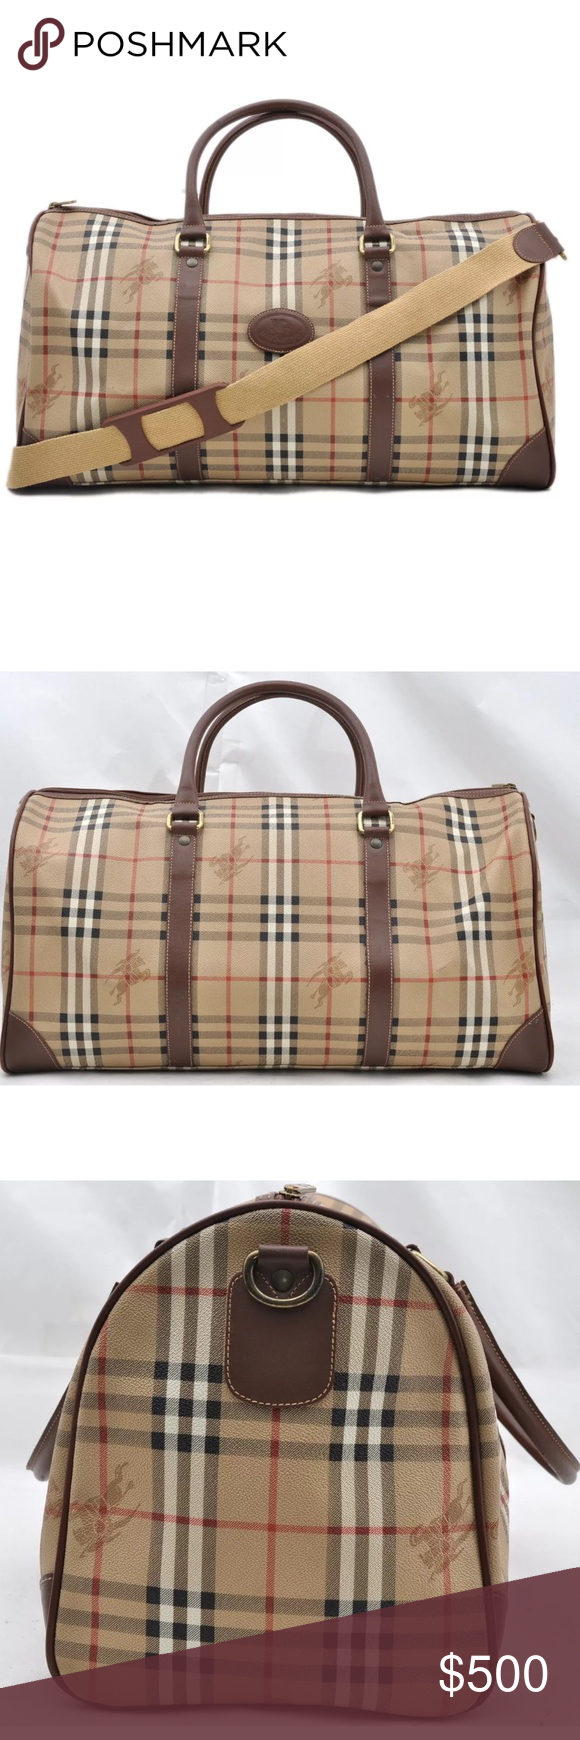 5af1df923ffc Authentic Burberry travel bag  Weekender bag Travel in style with this  great discontinued